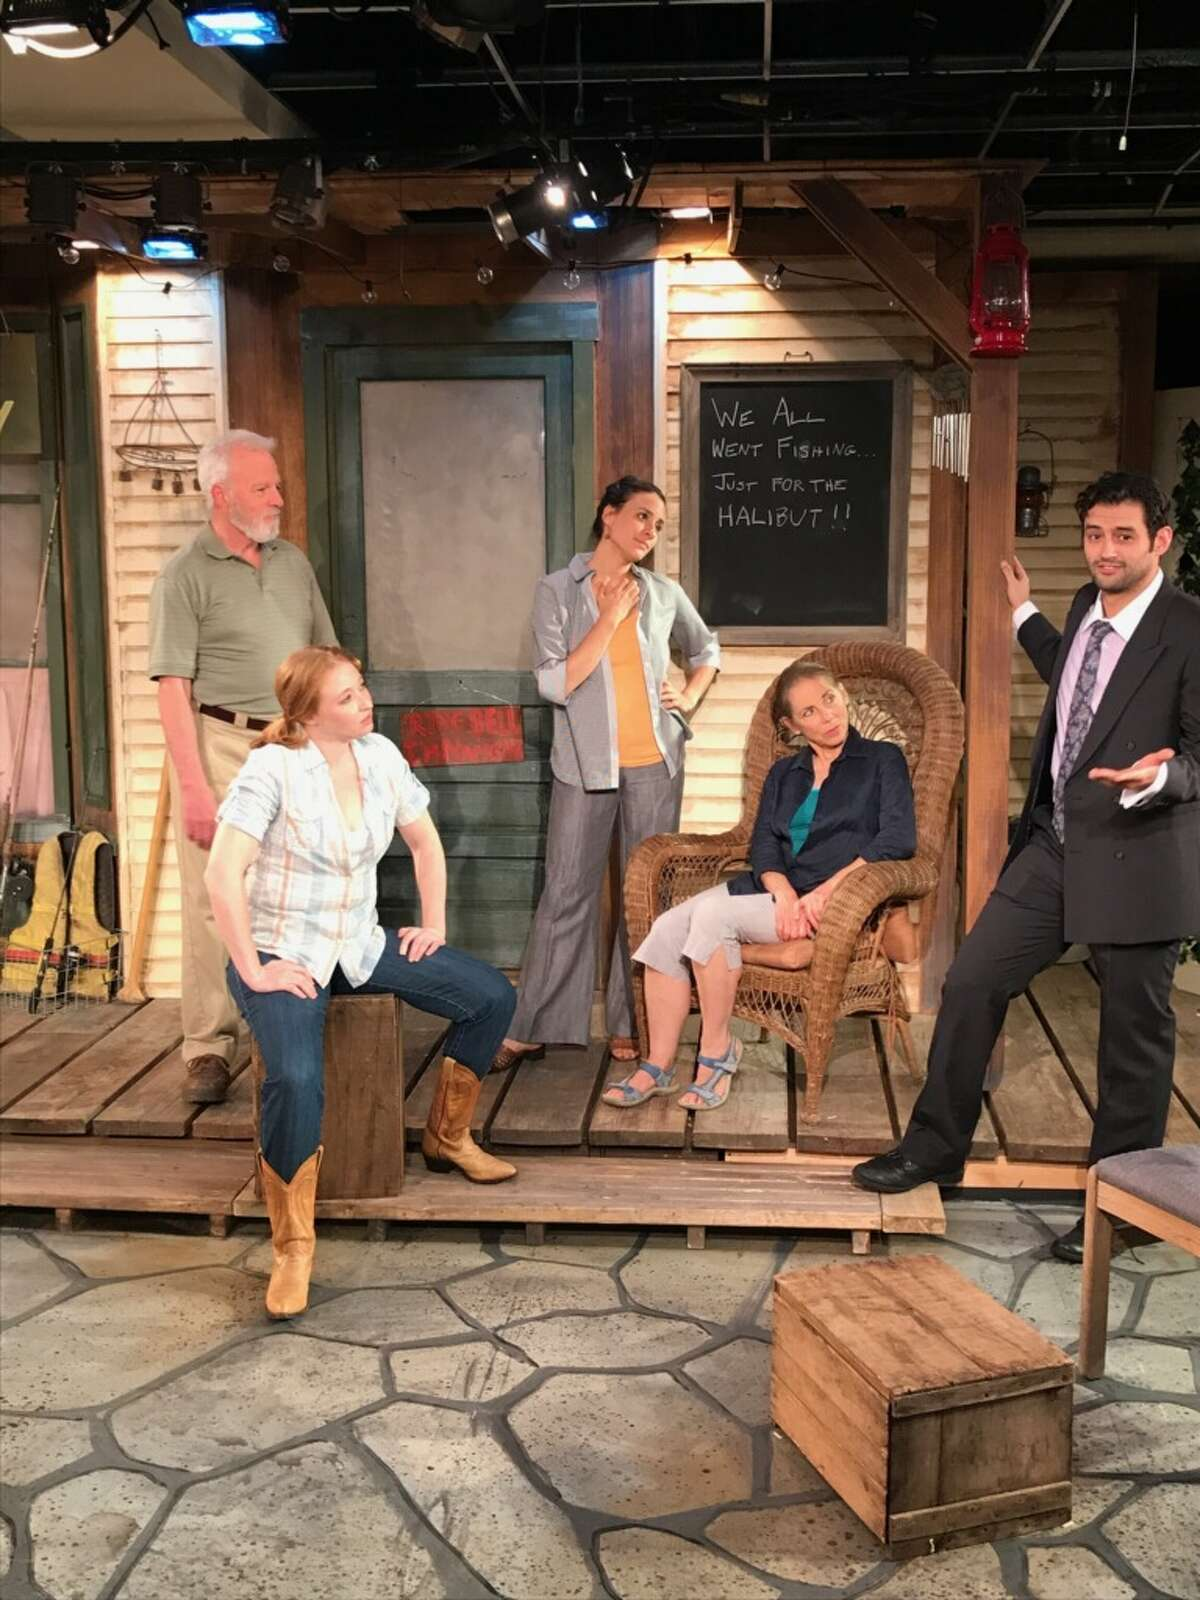 Jes Bedwinek, Elizabeth Pietrangelo, Abby DeGange, Don Paul Shannon and Bernardo Brandt in a scene from THE GREAT KOOSHOG LAKE HOLLIS MCCAULEY FISHING DERBY now playing at the Lake Theatre in Lake George.